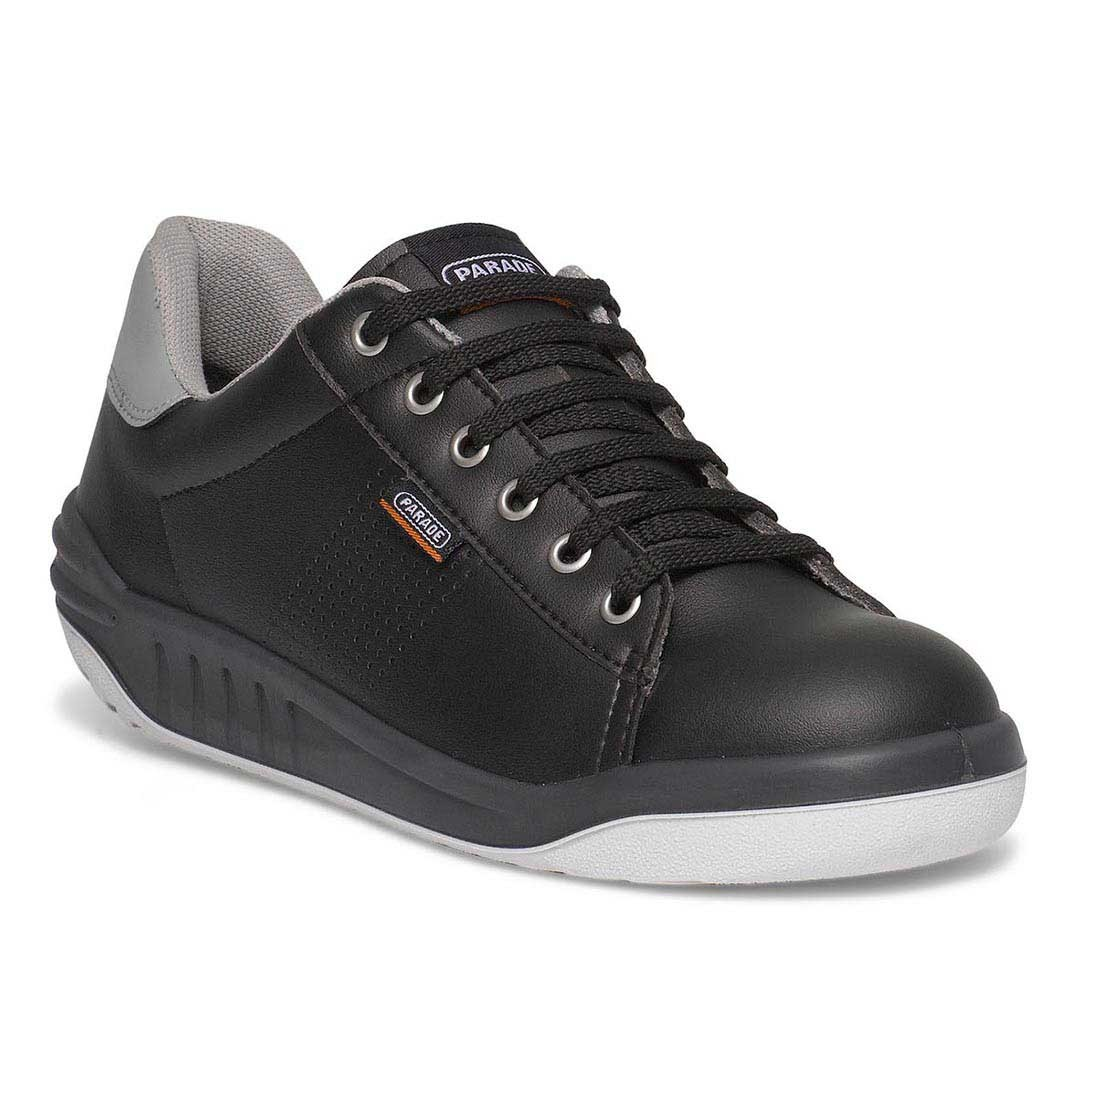 Parade Jamma Black Premium Unisex Safety Trainers with VPS Comfort System